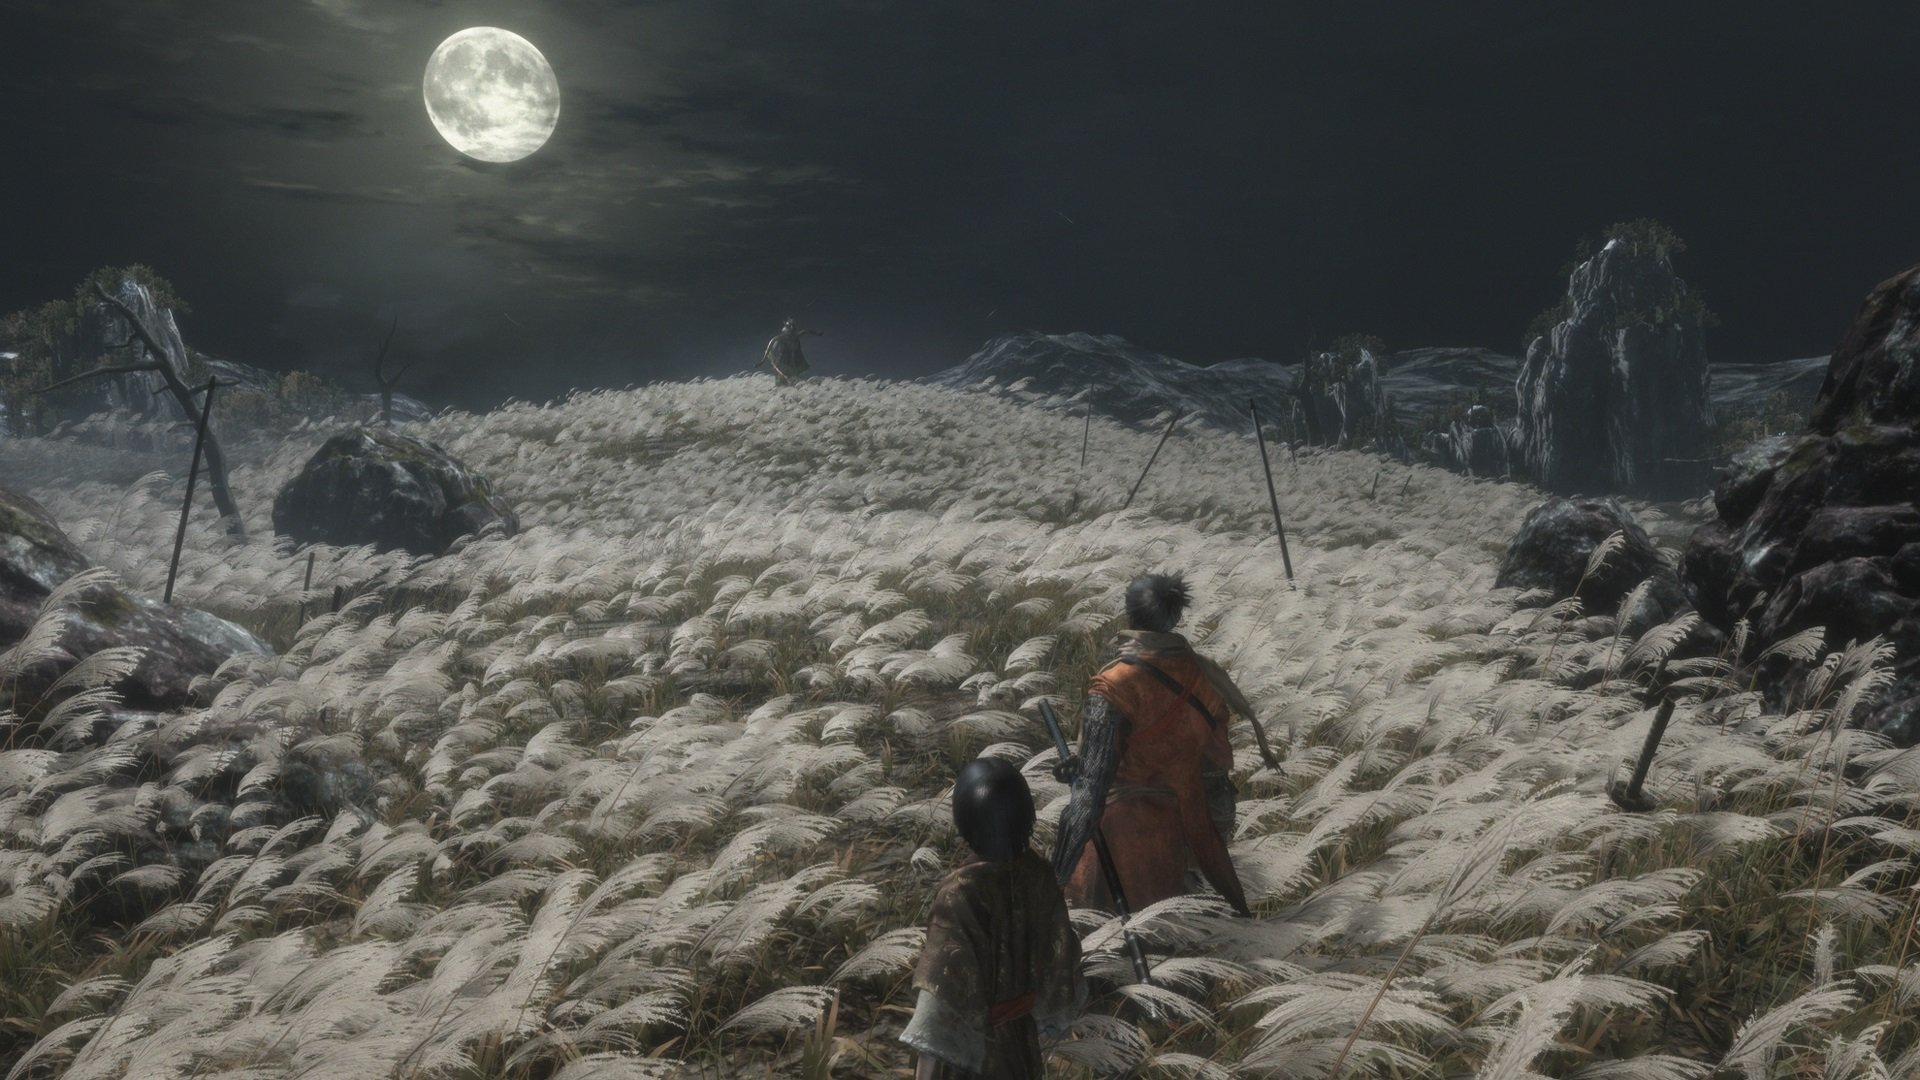 Sekiro: Shadows Die Twice, the latest from the creator of Dark Souls, dated for March screenshot